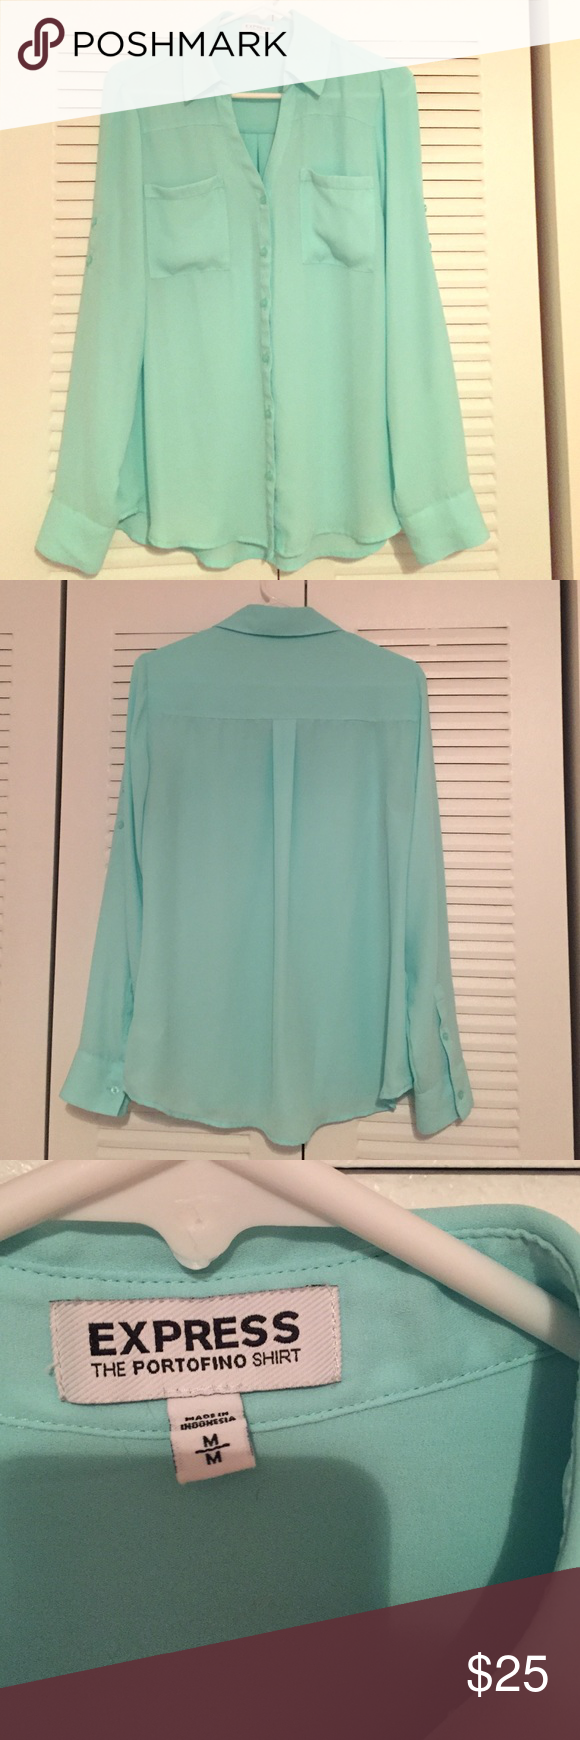 Express Portofino Shirt Teal Express Portofino Shirt Size Medium Express Tops Button Down Shirts